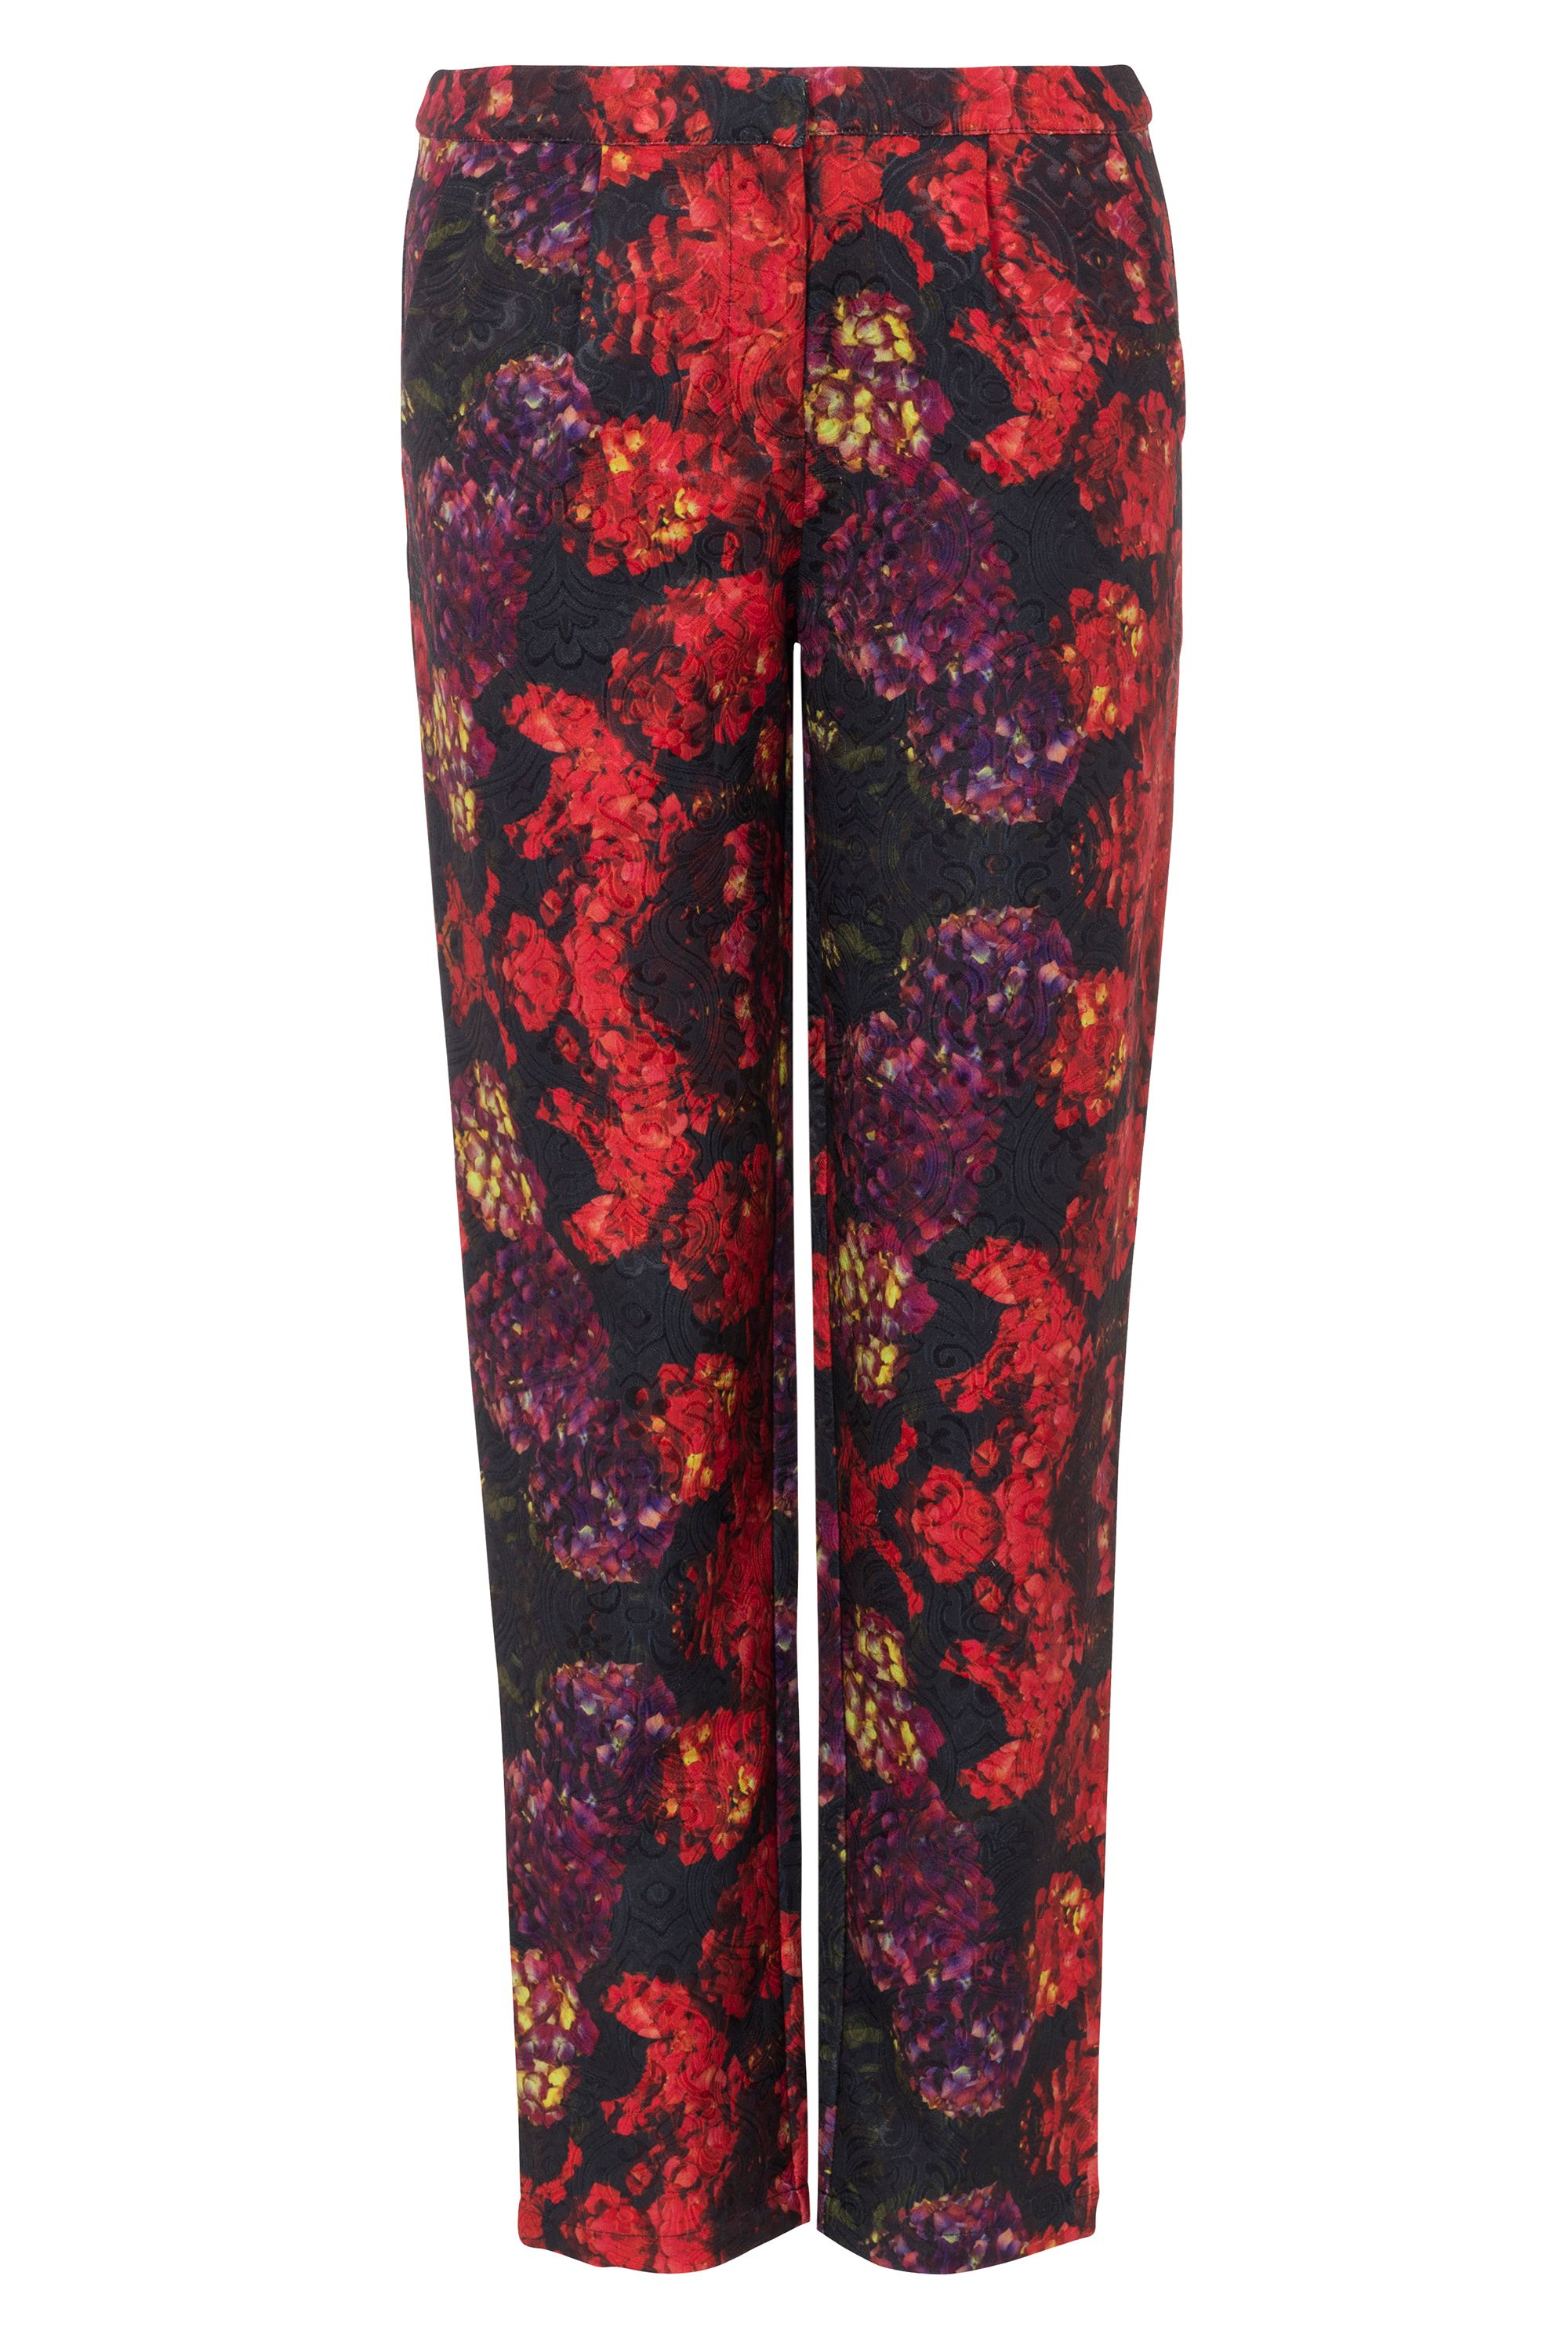 Wolf & Whistle Wolf & Whistle Hydrangea Print Trousers, Multi-Coloured